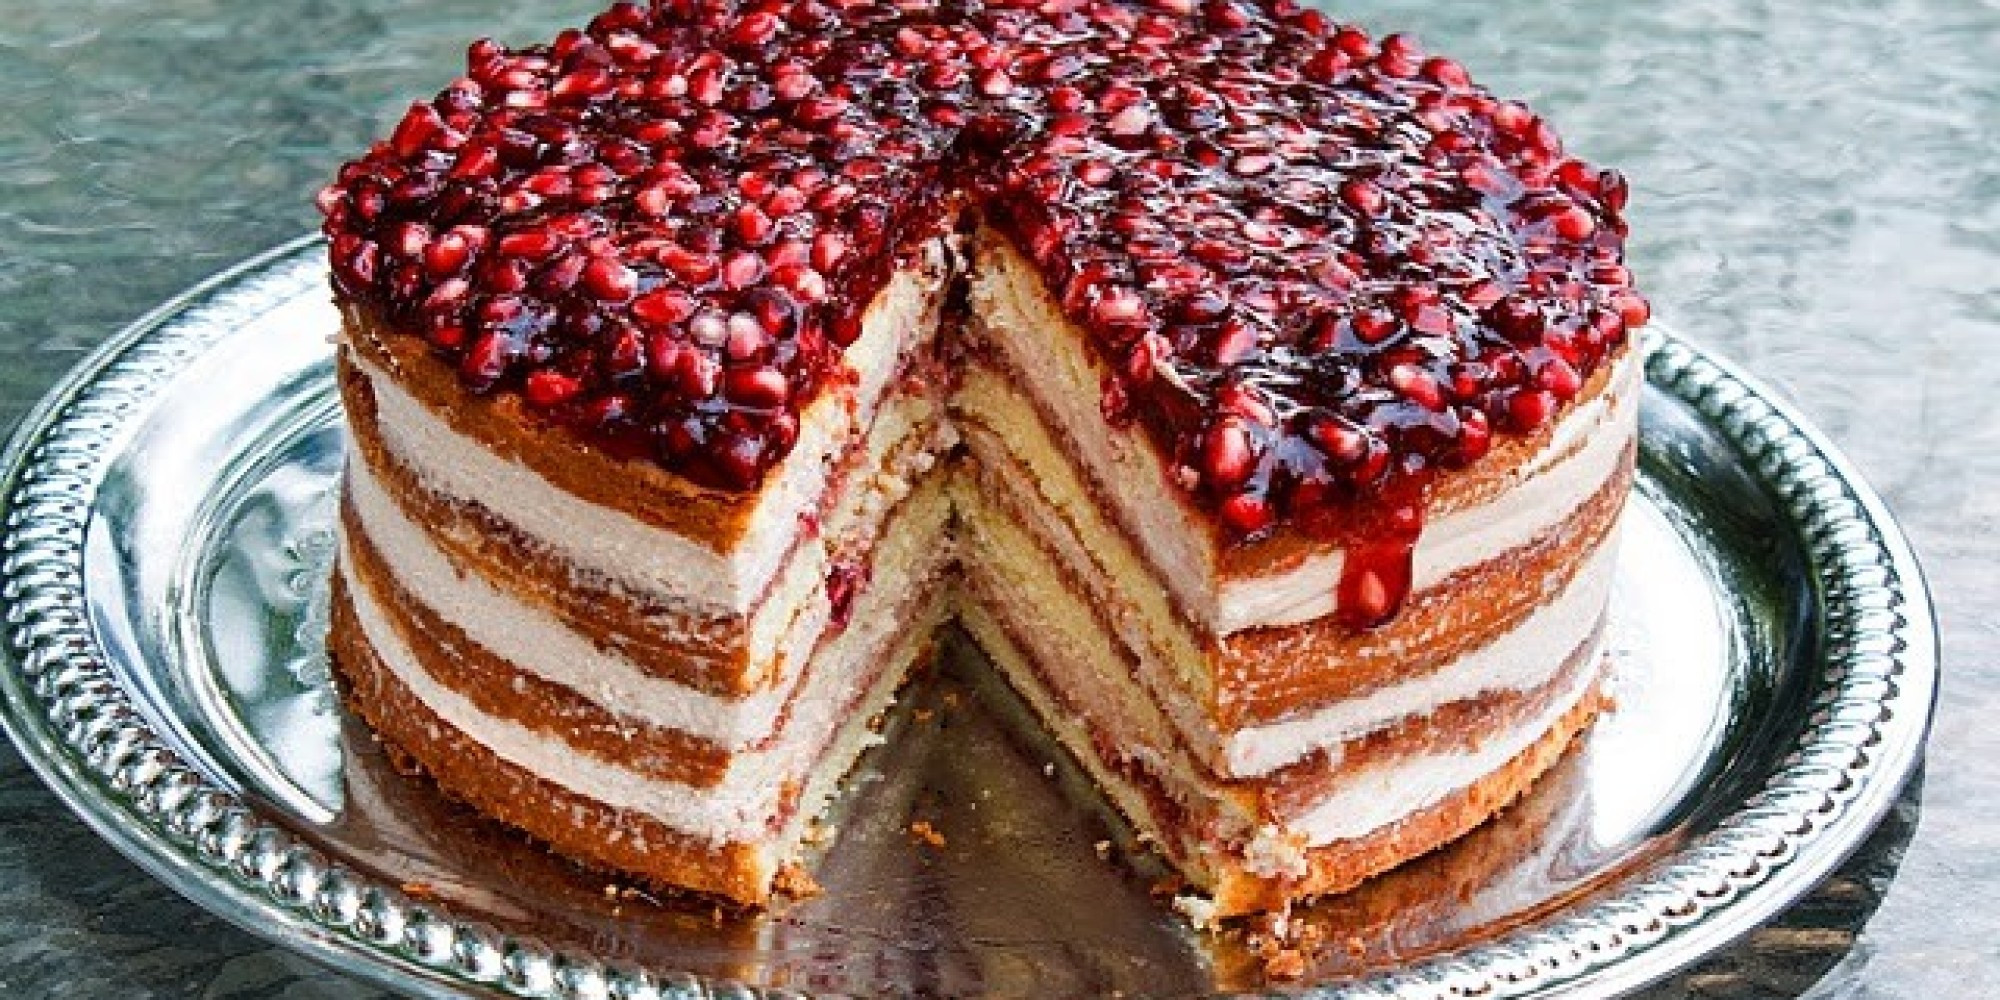 Best Christmas Desserts Ever  The Most Stunning Christmas Dessert Recipes Ever PHOTOS